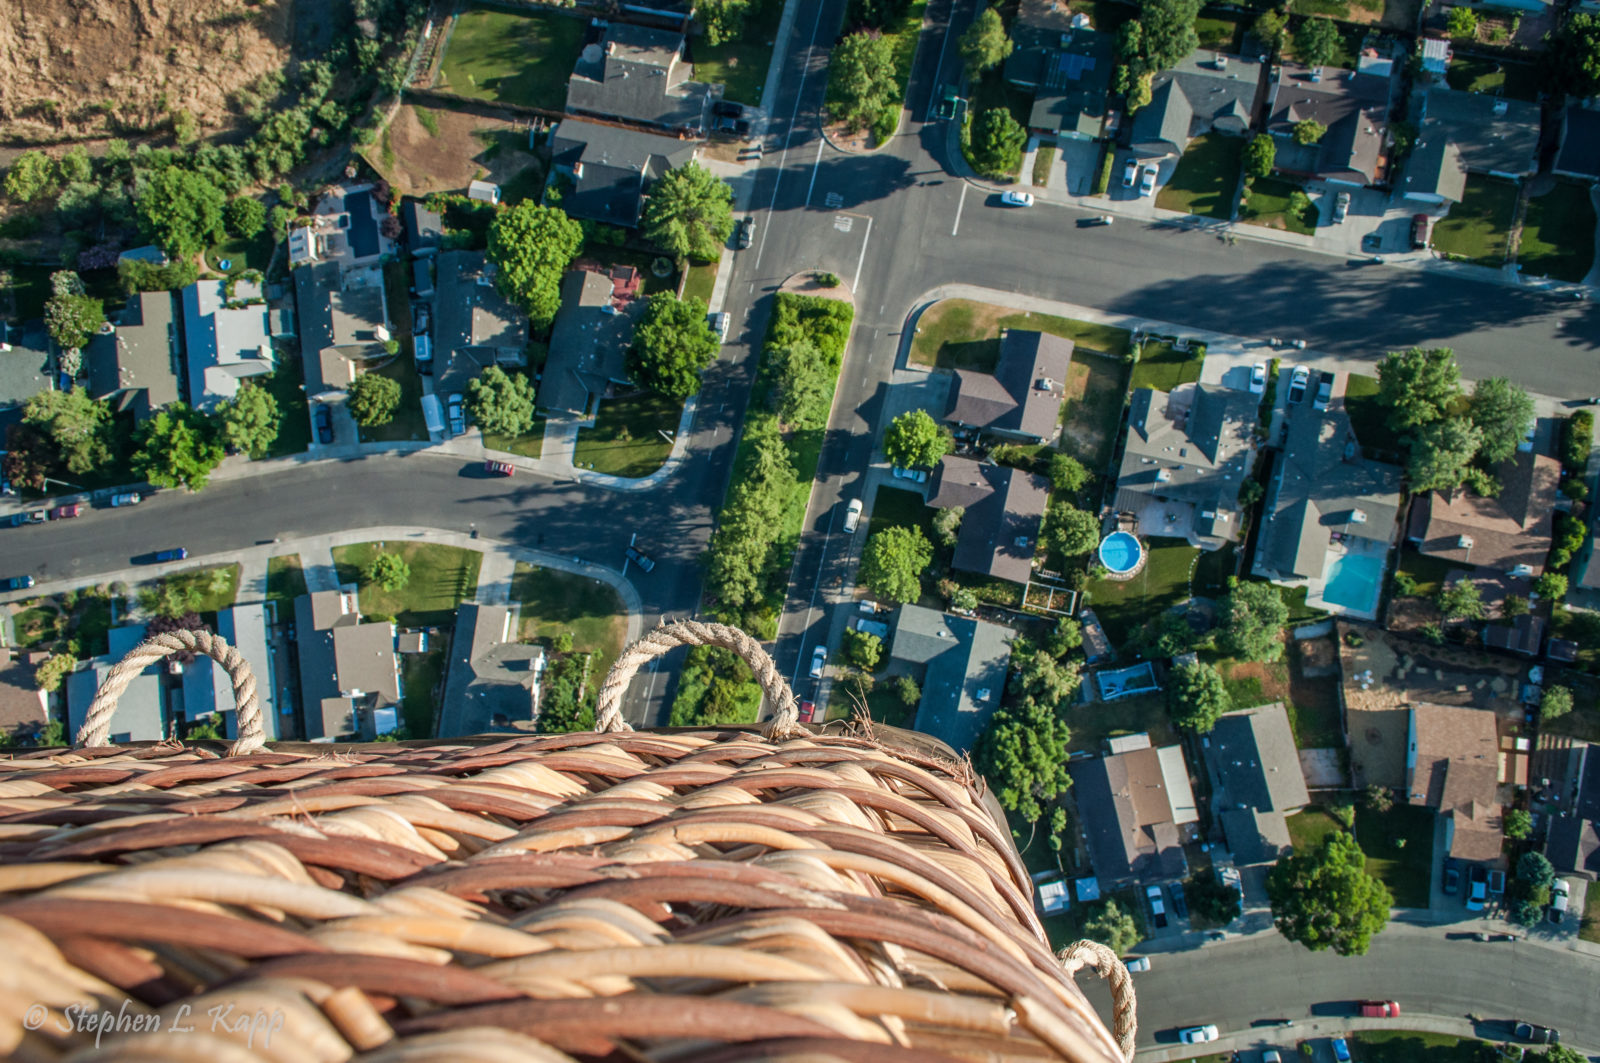 Looking Down on Suburbia